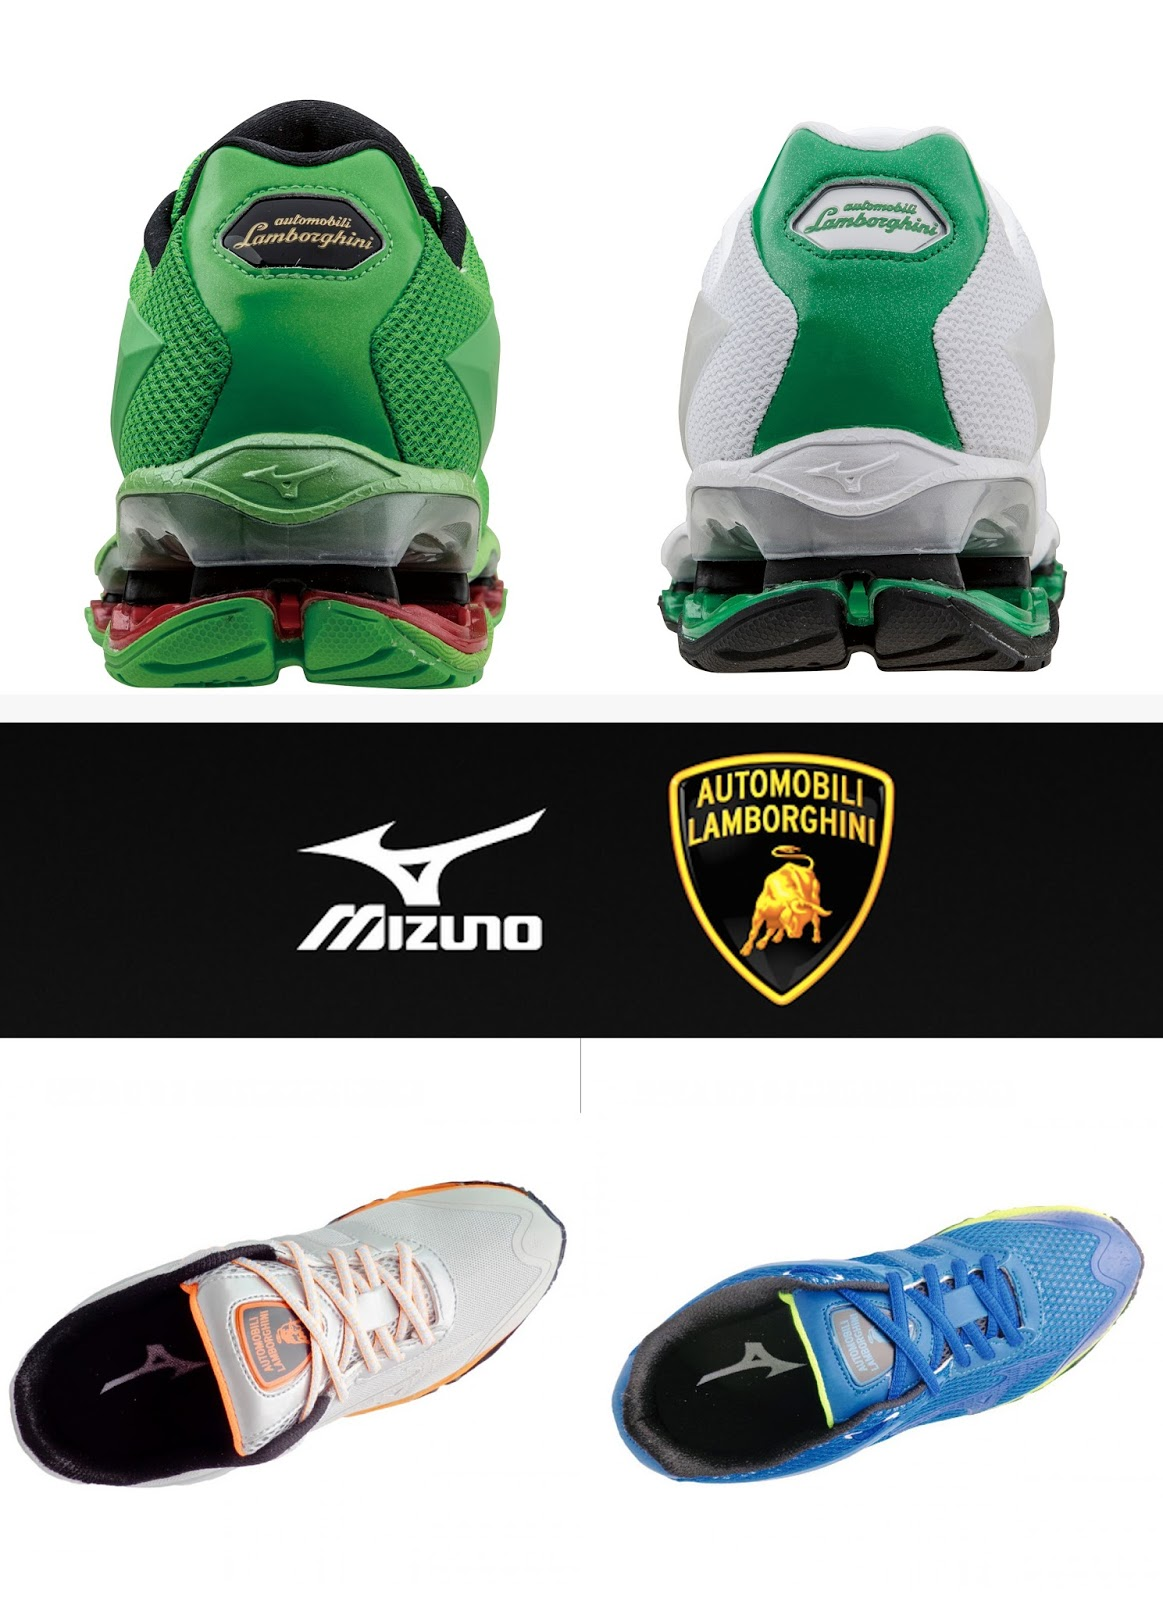 Eniwhere Fashion - News on Fashion - Mizuno & Lamborghini